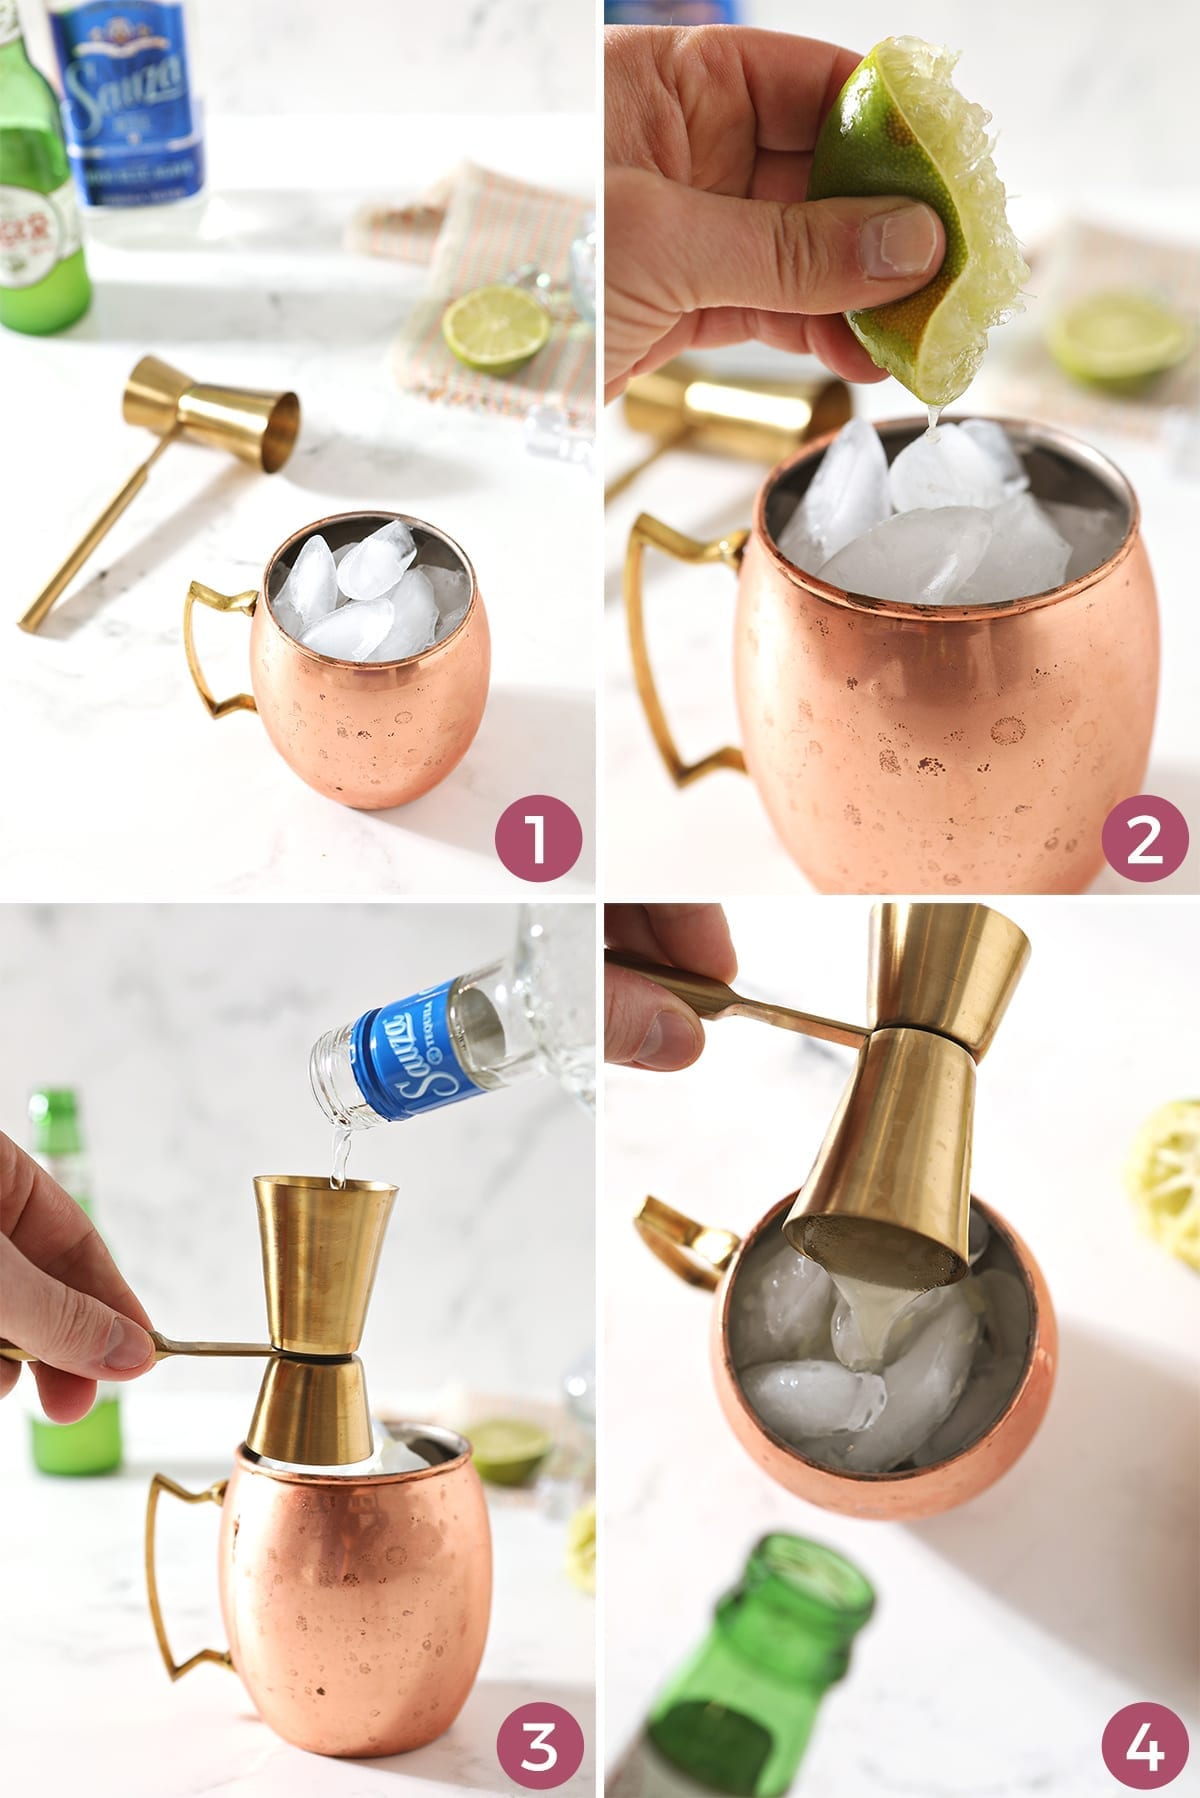 Collage of four images showing how to mix a Moscow Mule with tequila